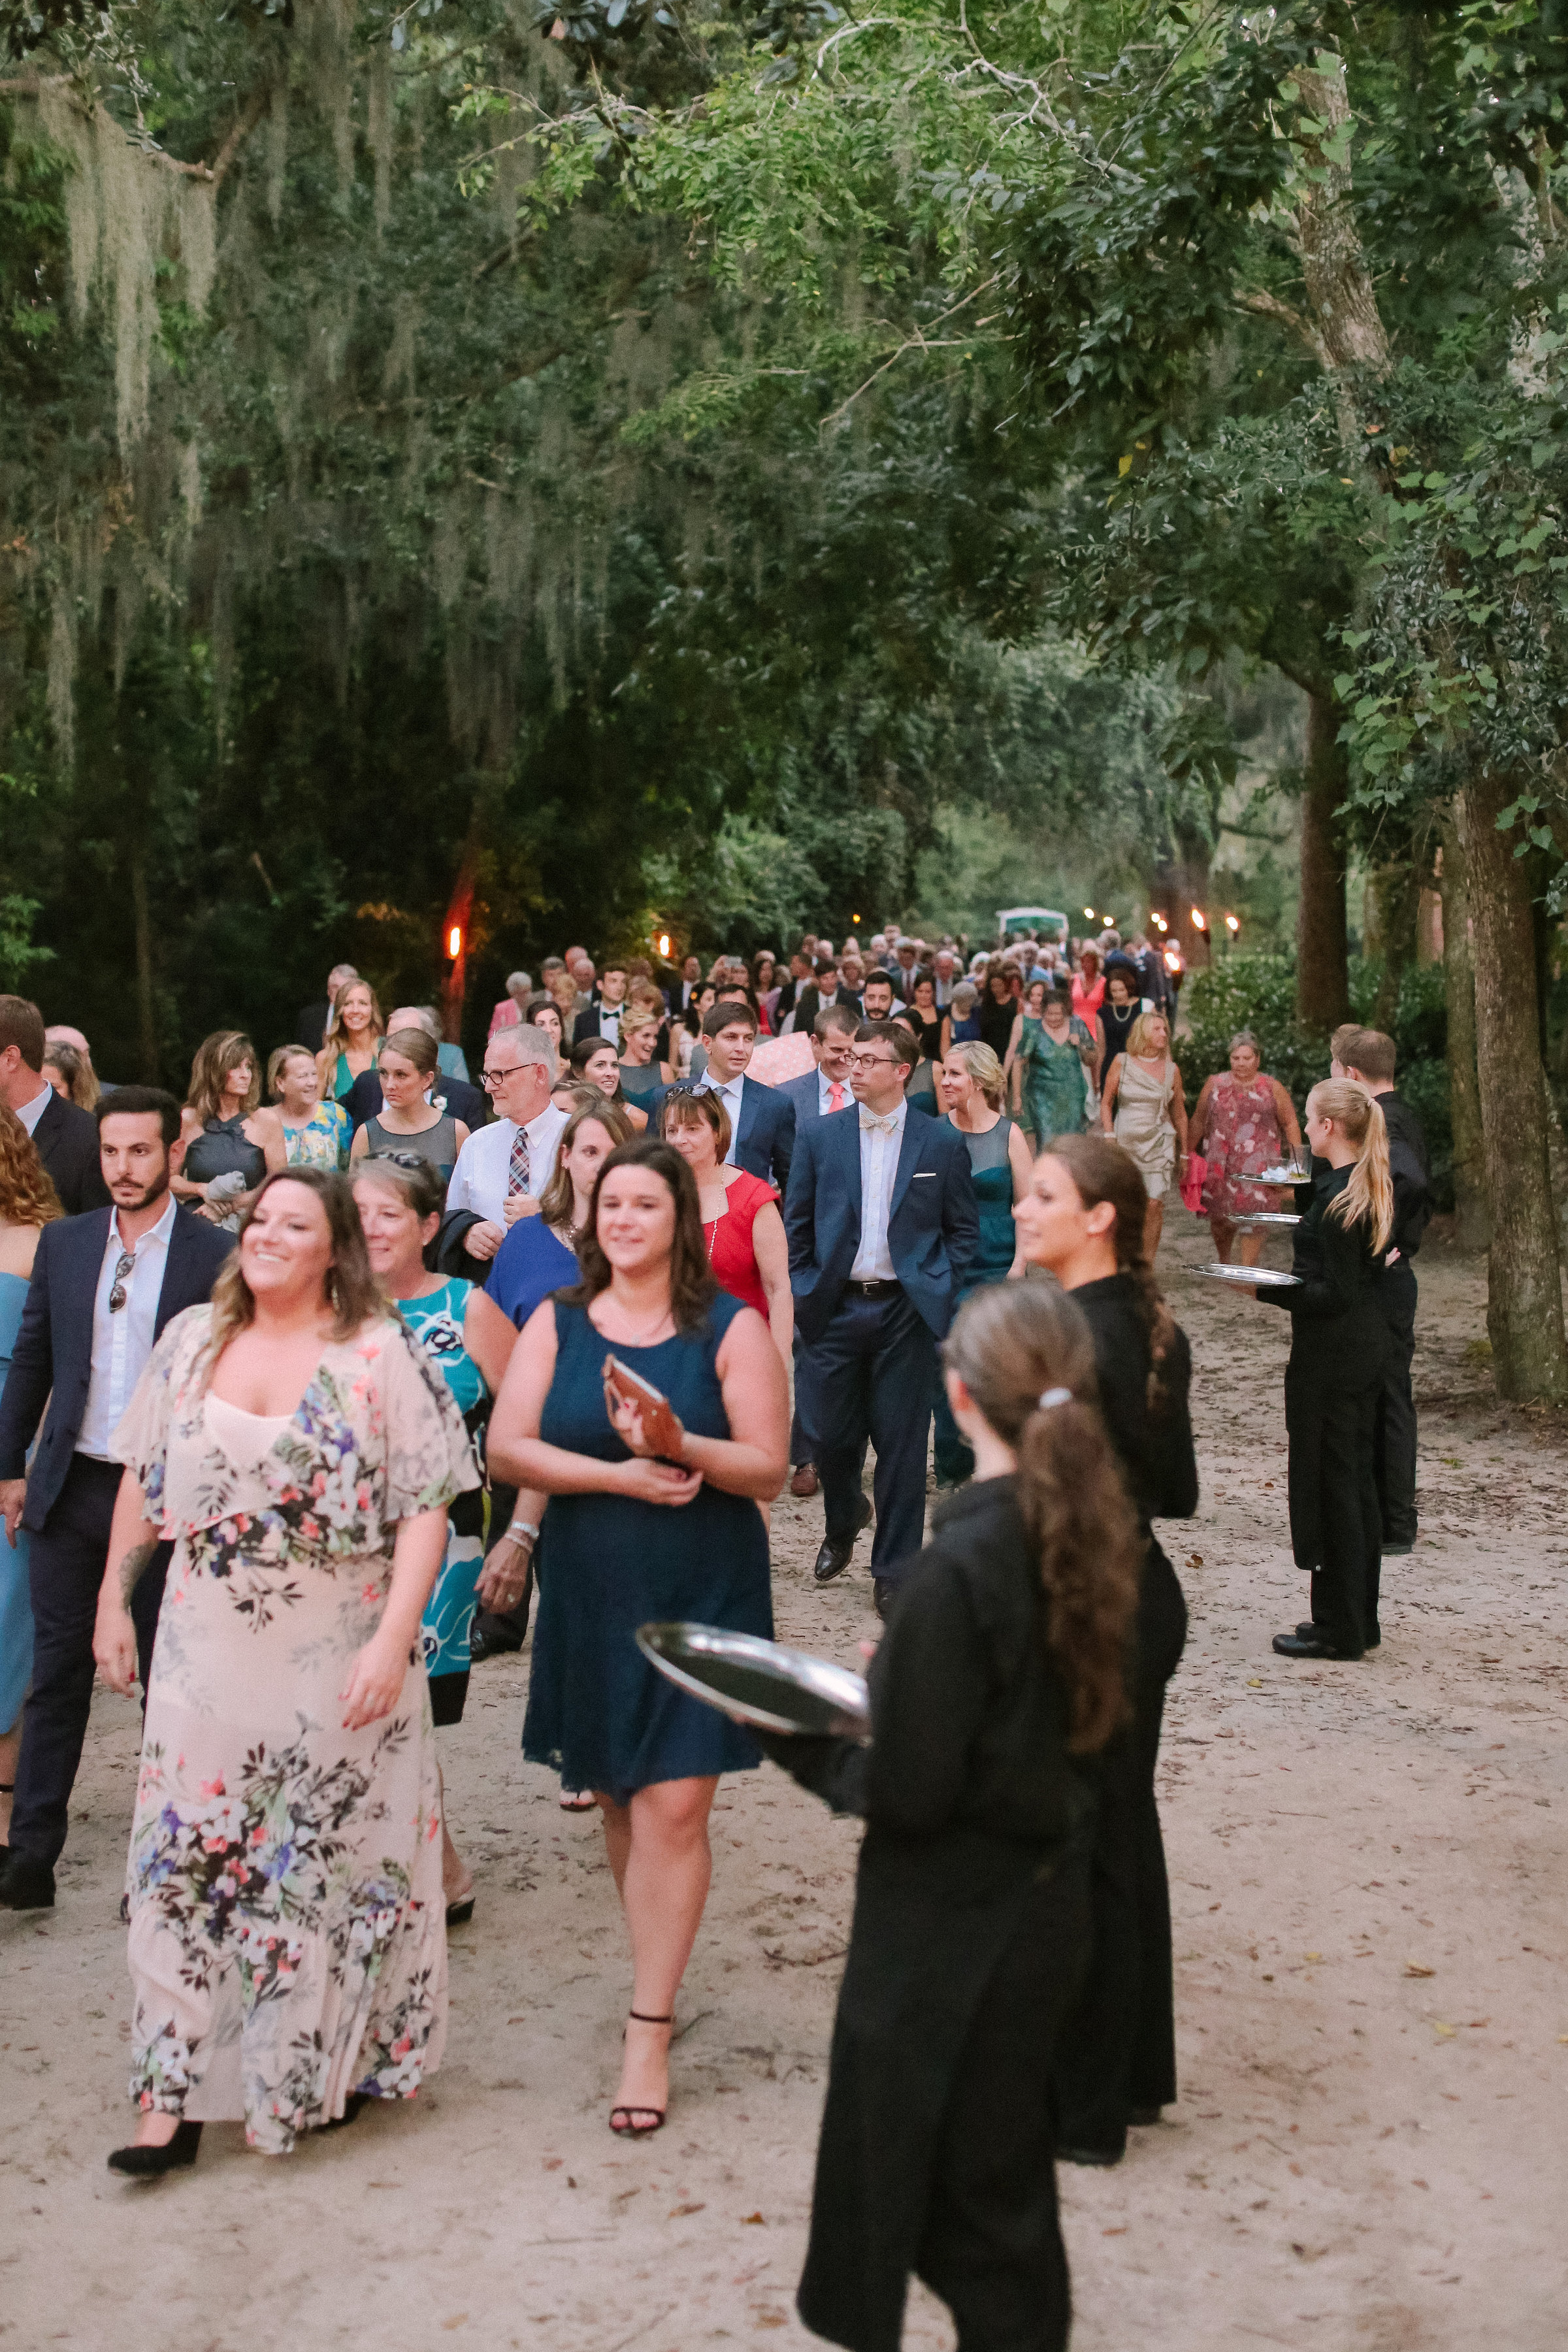 Guests arrive to wedding reception at The Cotton Dock  //  Wedding photography by Landon Jacob  //  A Lowcountry Wedding Magazine